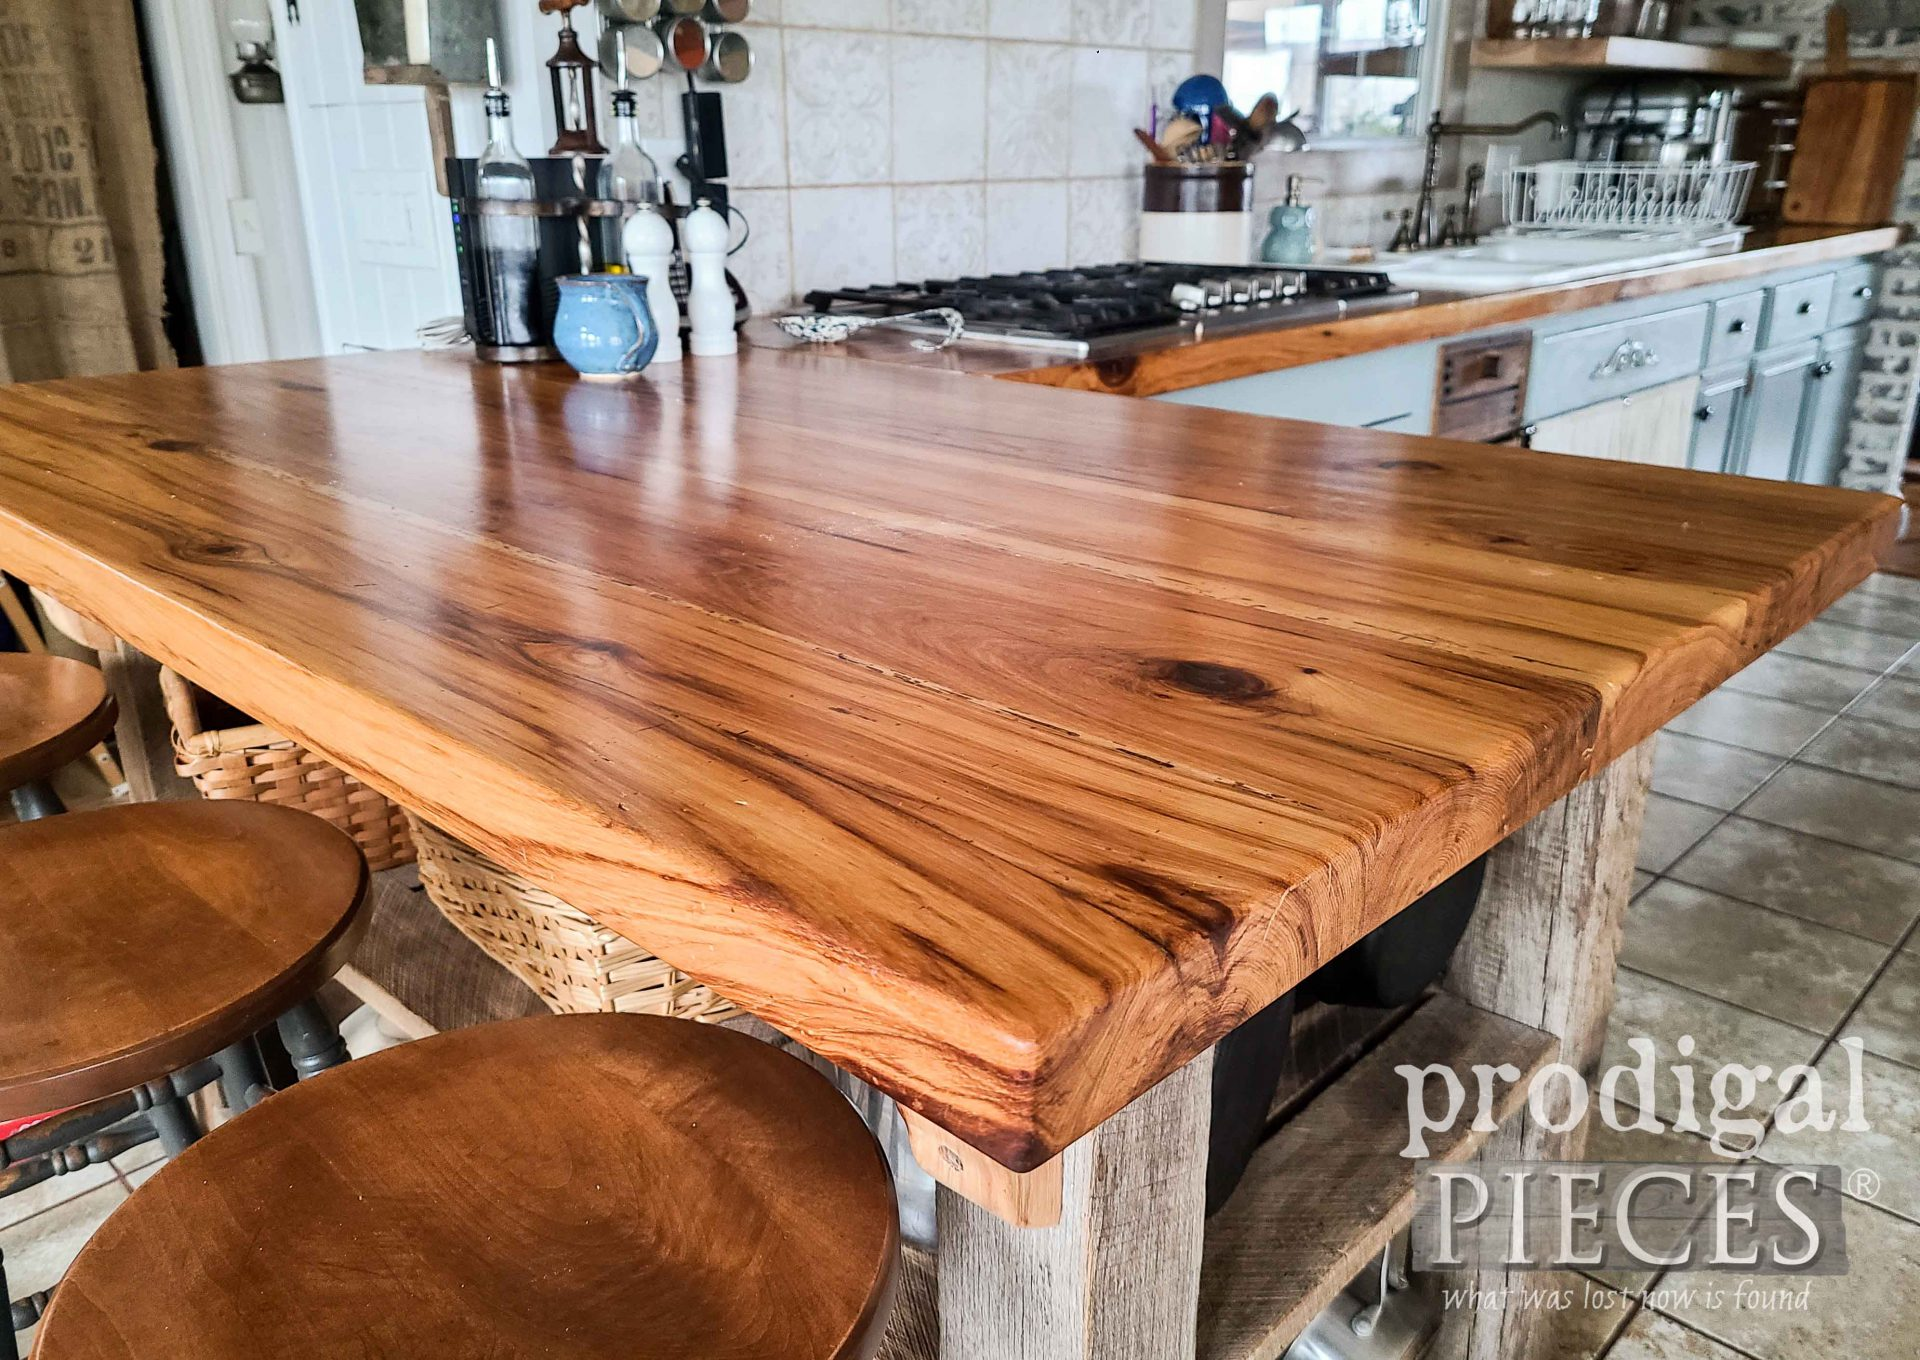 Reclaimed Hickory Wood Kitchen Counter by Larissa of Prodigal Pieces | prodigalpieces.com #prodigalpieces #diy #home #kitchen #wood